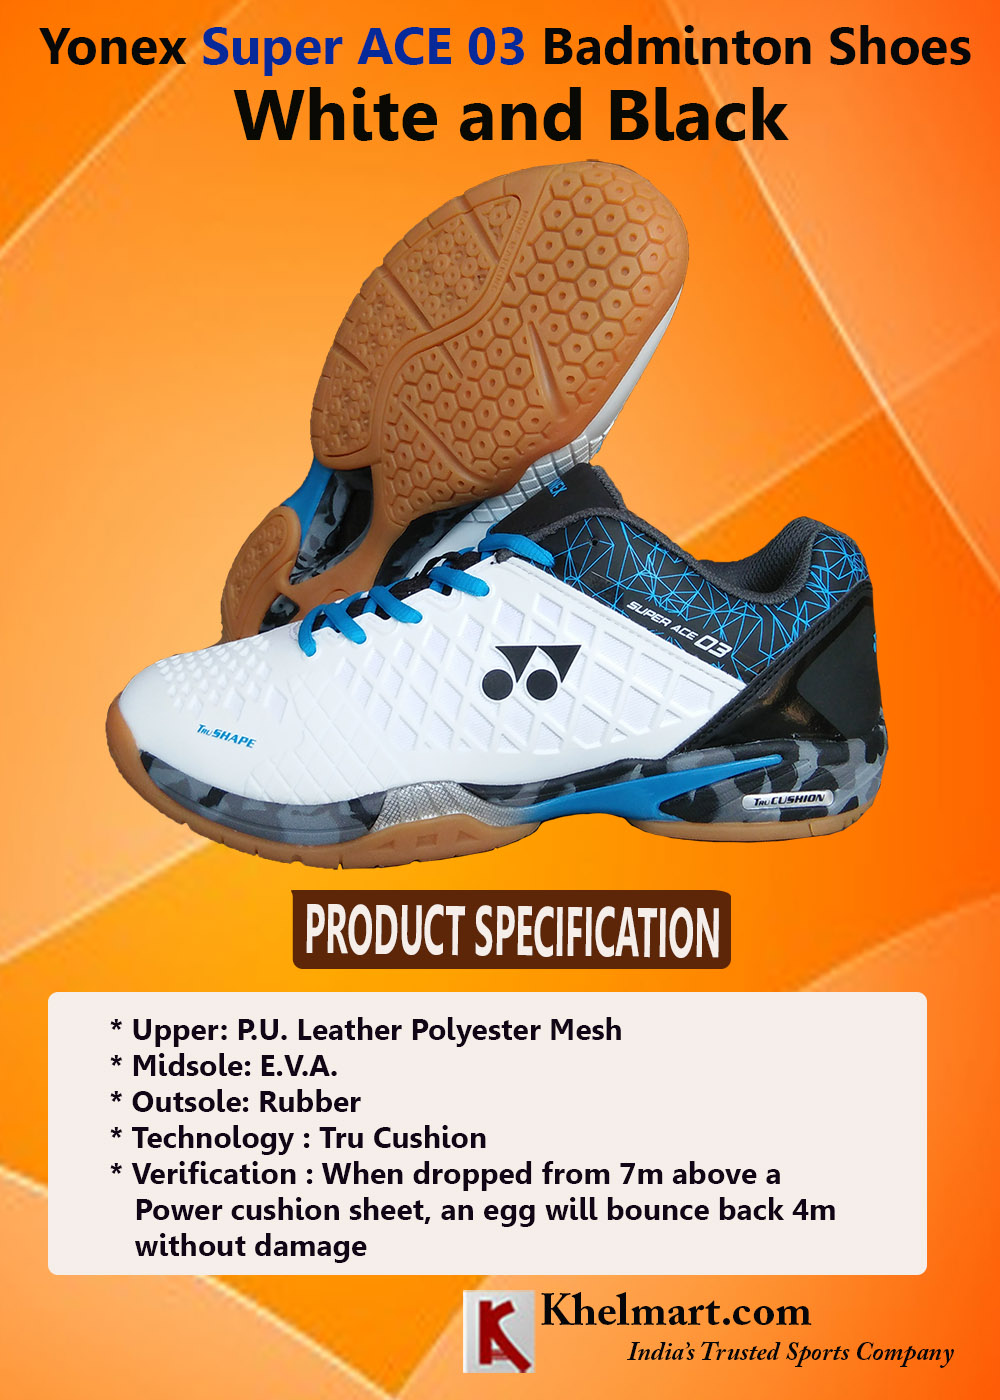 Yonex Super ACE 03 Badminton Shoes Coral White and Black_4